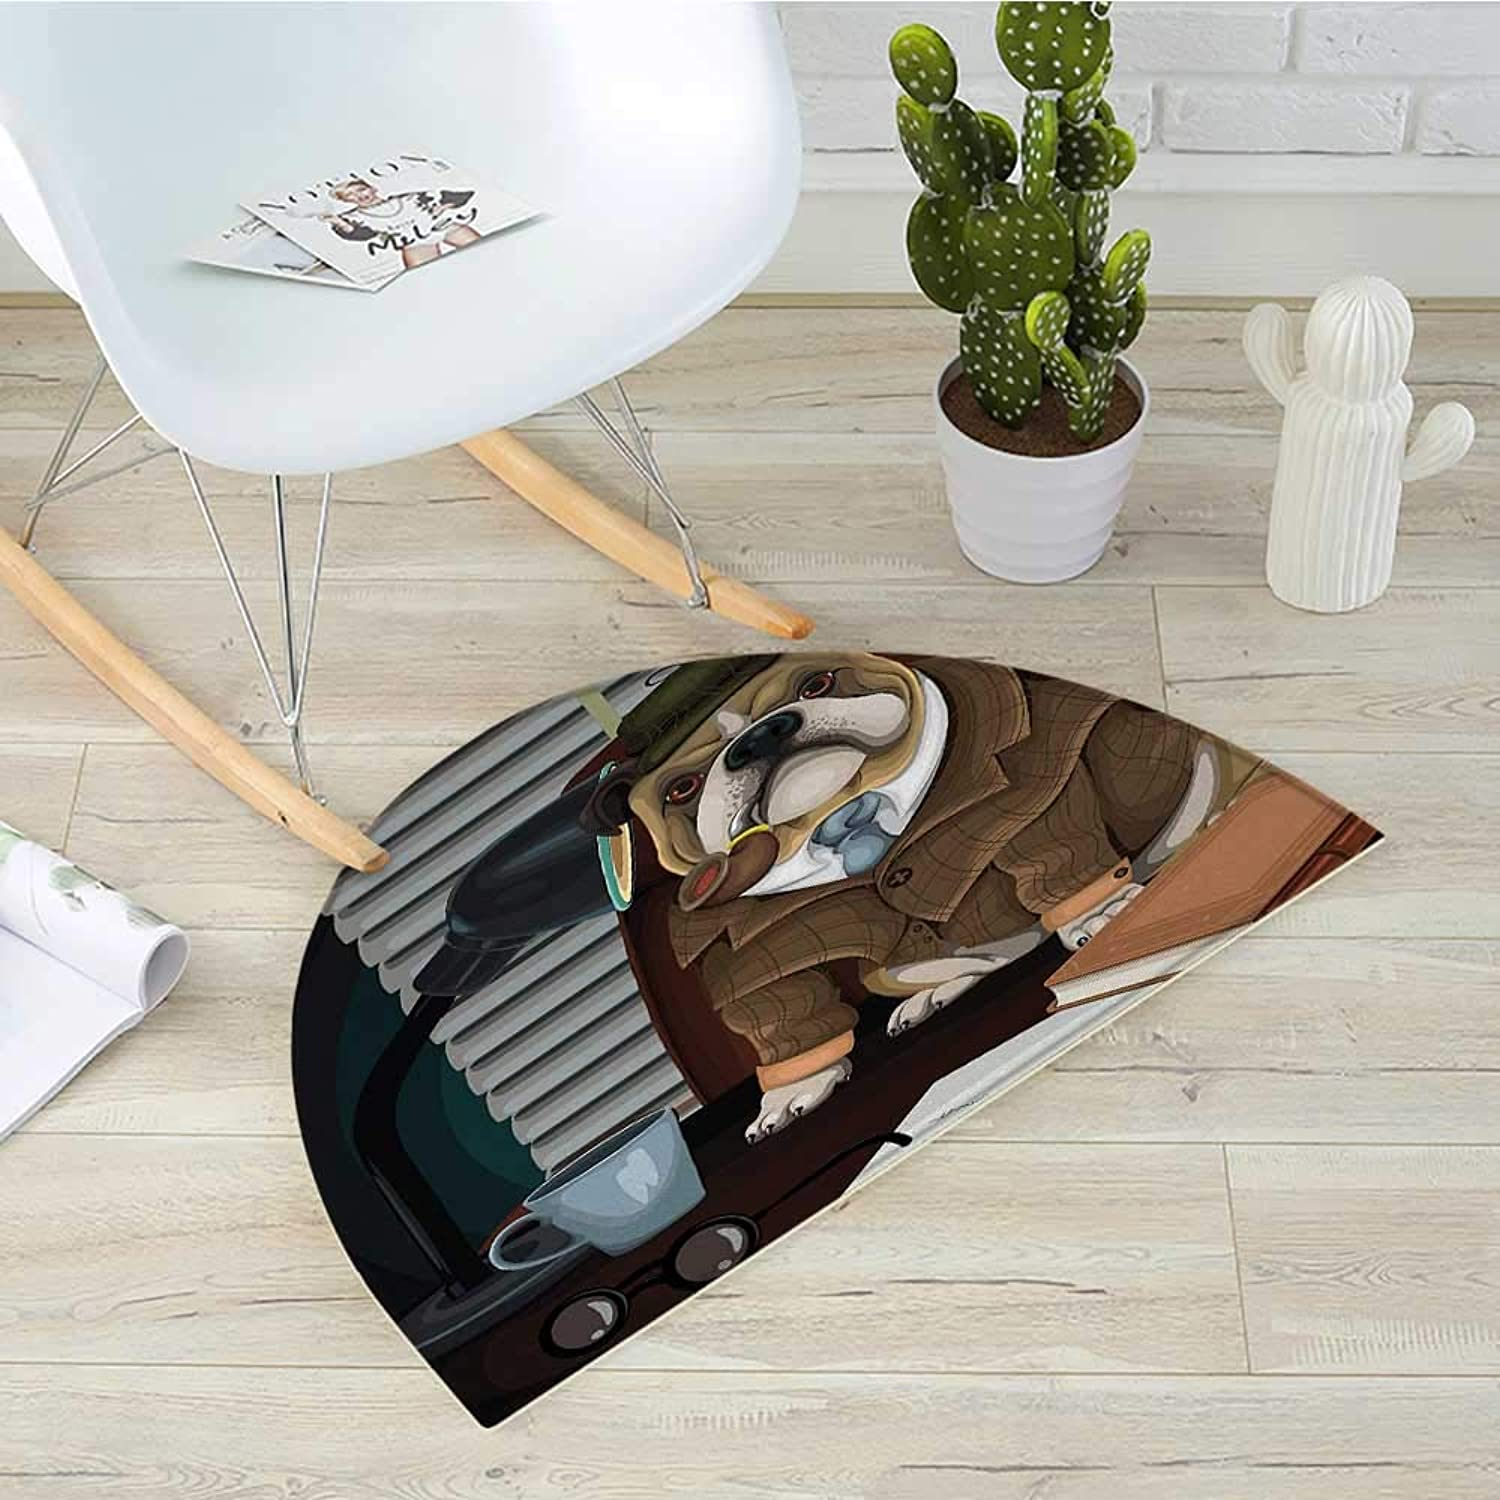 English Bulldog Semicircle Doormat Traditional English Detective Dog with a Pipe and Hat Sherlock Holmes Image Halfmoon doormats H 39.3  xD 59  Multicolor